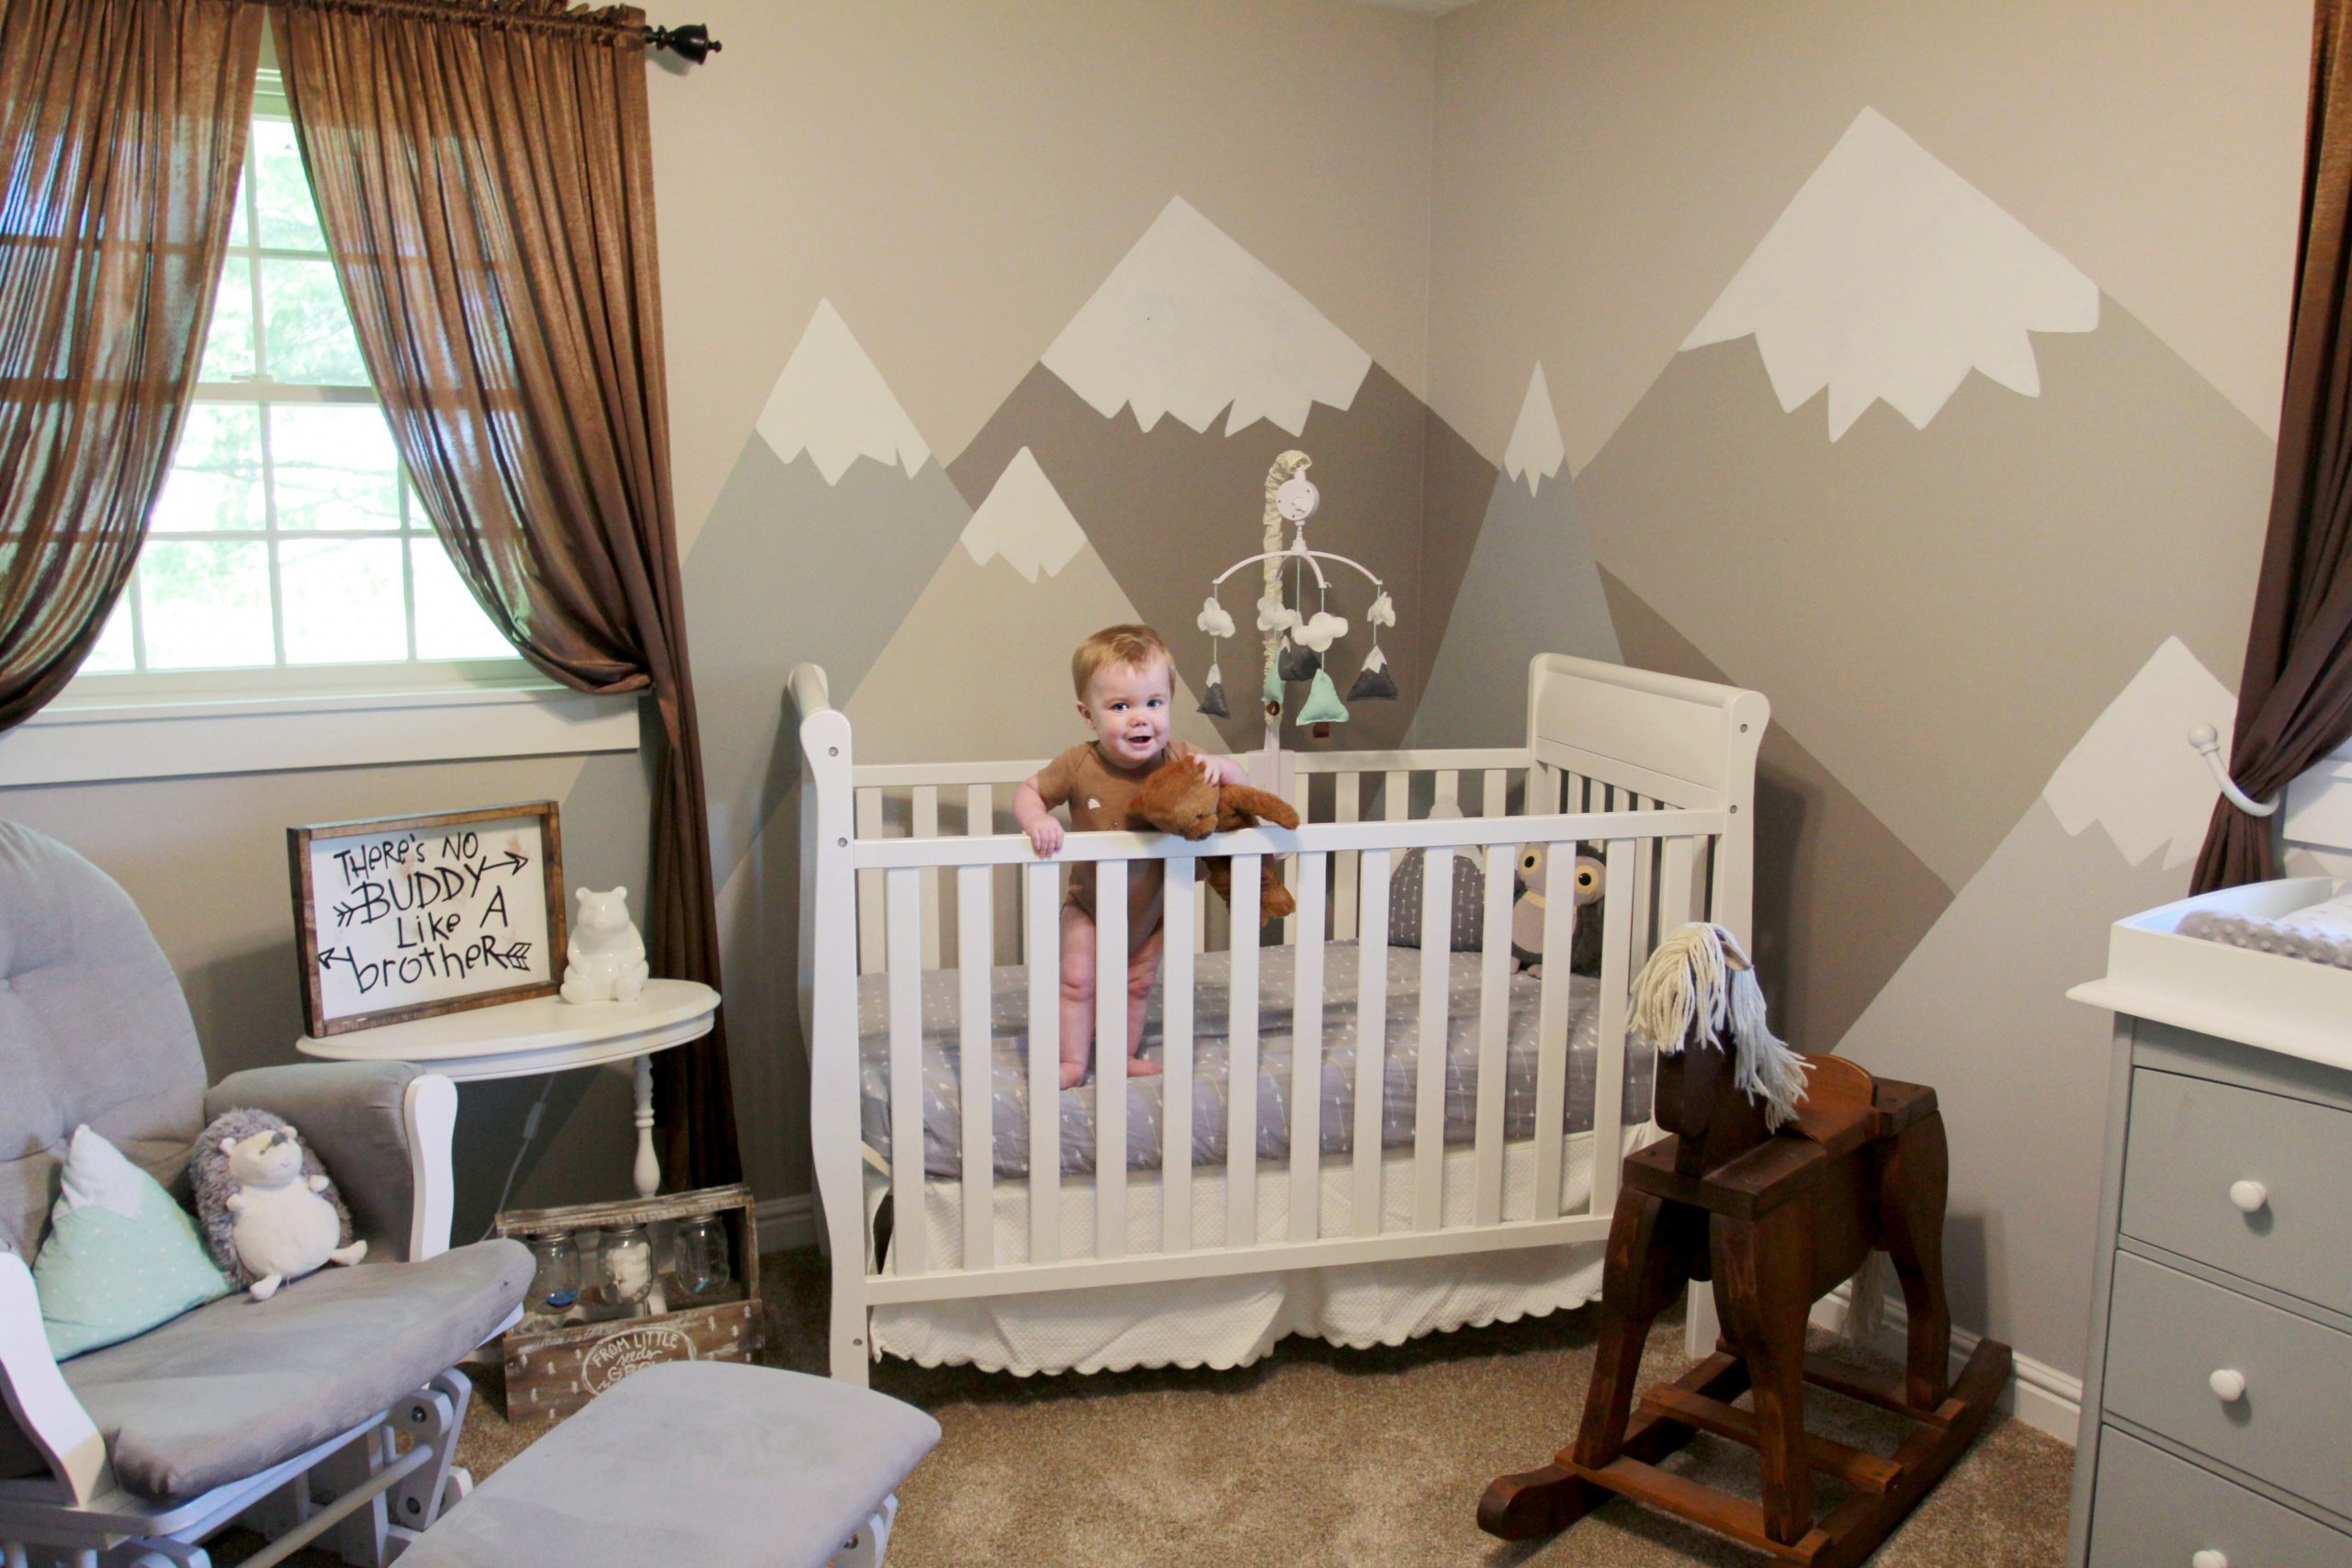 Nursery Room Remodel: Mountain Theme for a Baby Boy - Sojourner Mom - Baby Room Mountain Theme